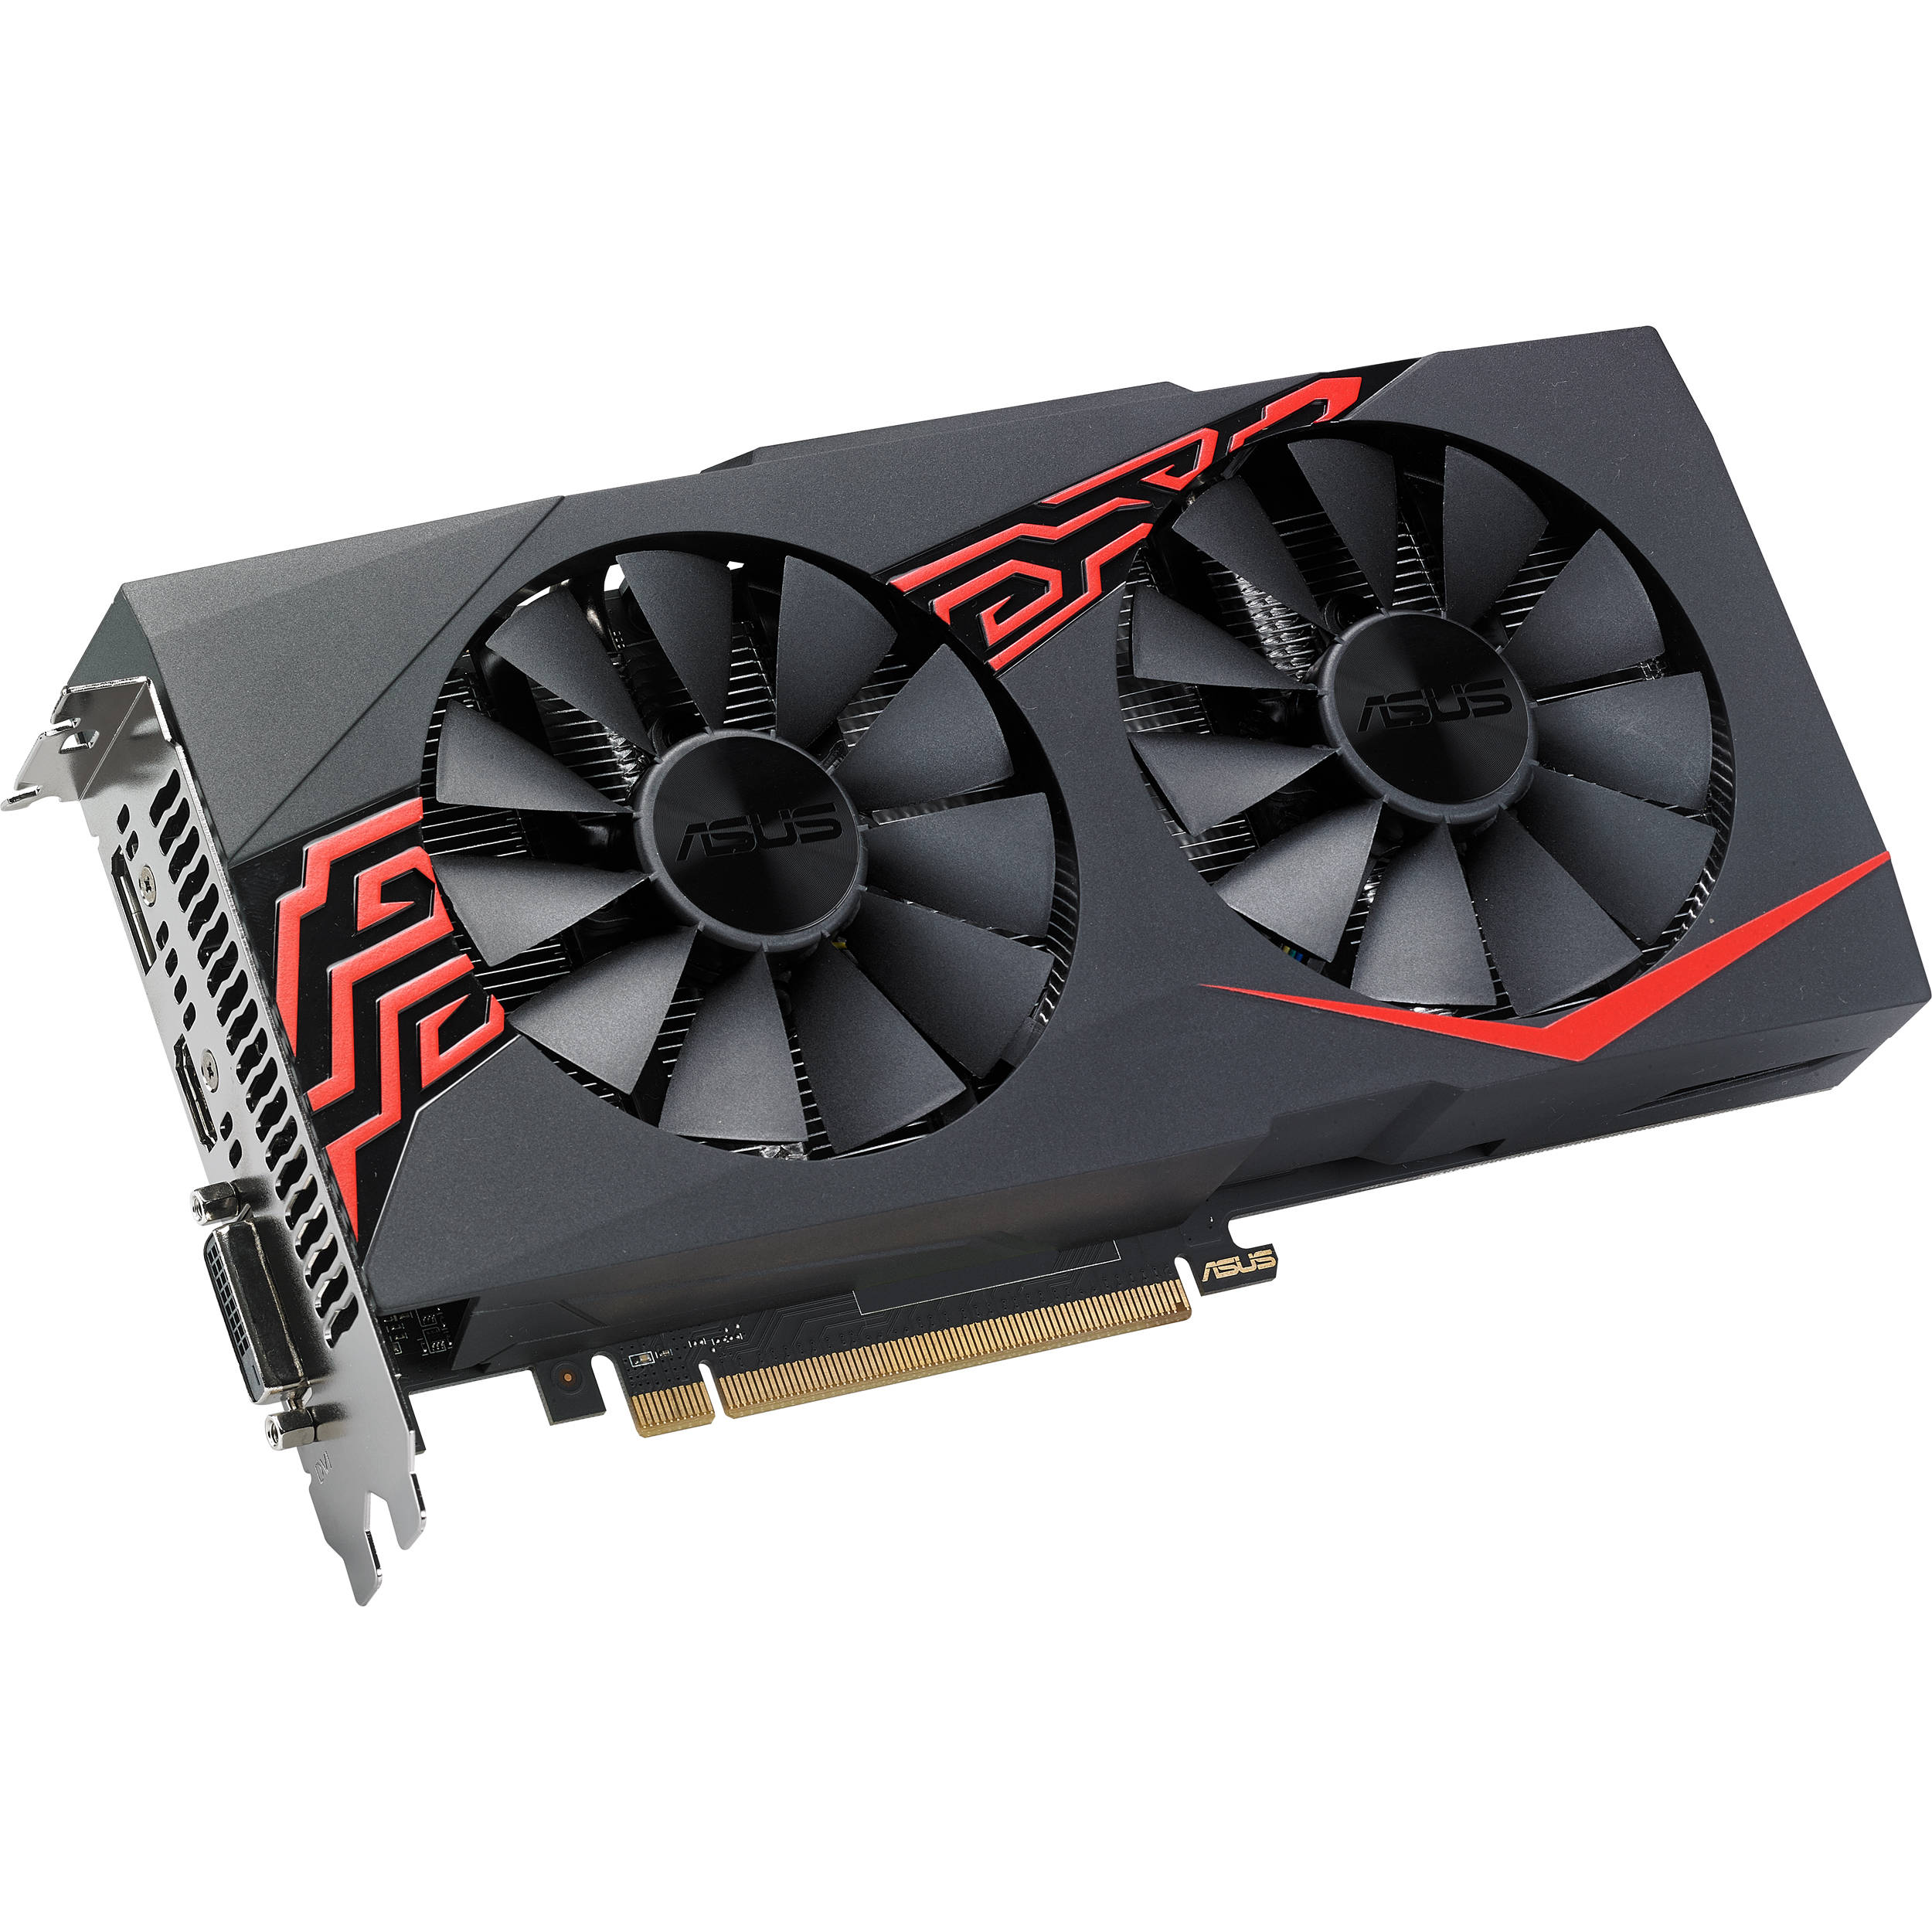 ASUS Expedition Radeon RX 570 8GB OC Edition Gaming Graphics Card